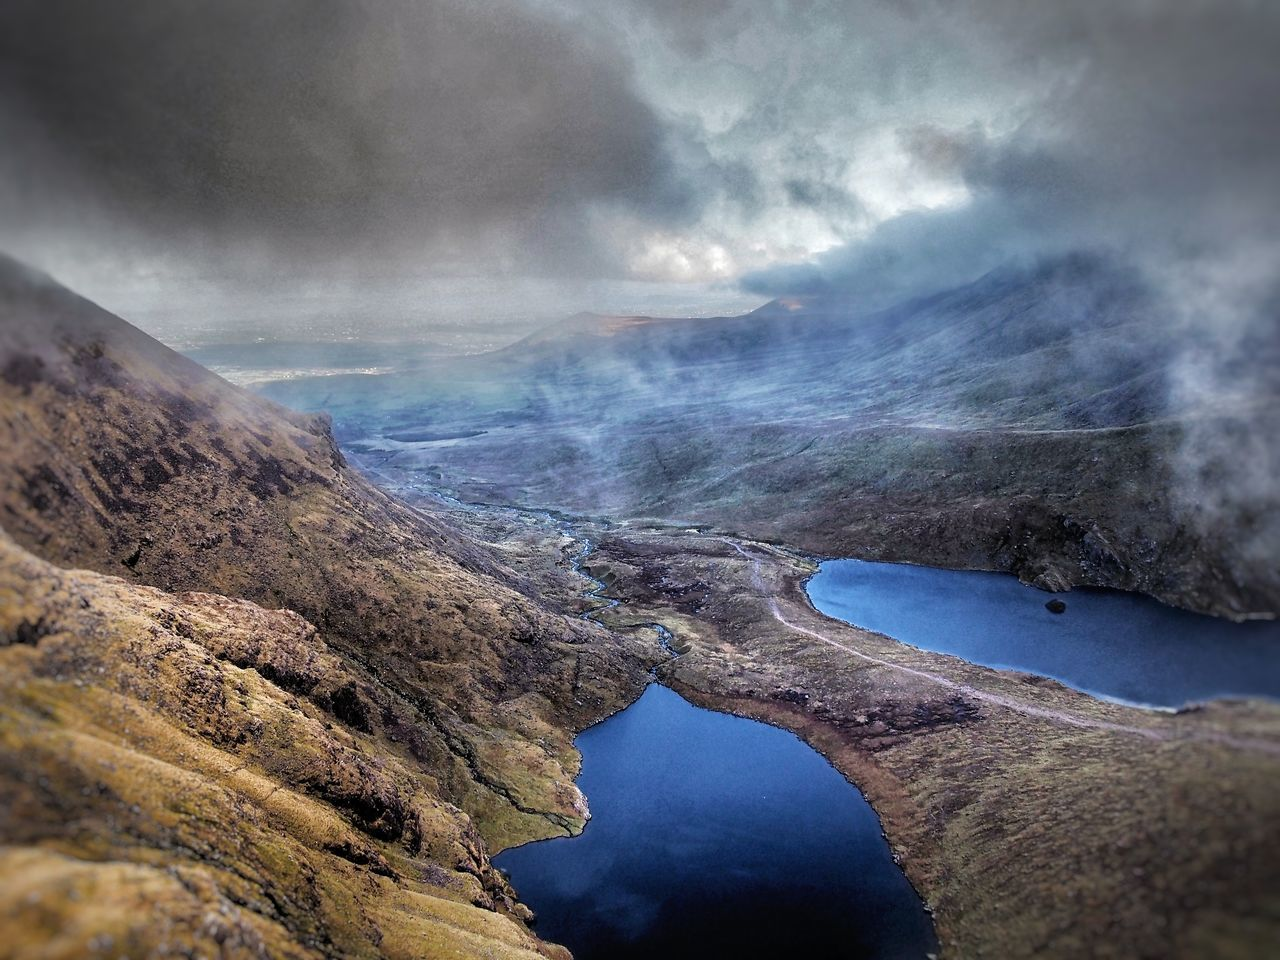 Hag's Glen Macgillycuddy's Reeks Ireland Landscape Mountain Range Cloud - Sky Lough Lough Callee Lough Gouragh Outdoors Hiking Photography Landscapes Glen No People Beauty In Nature